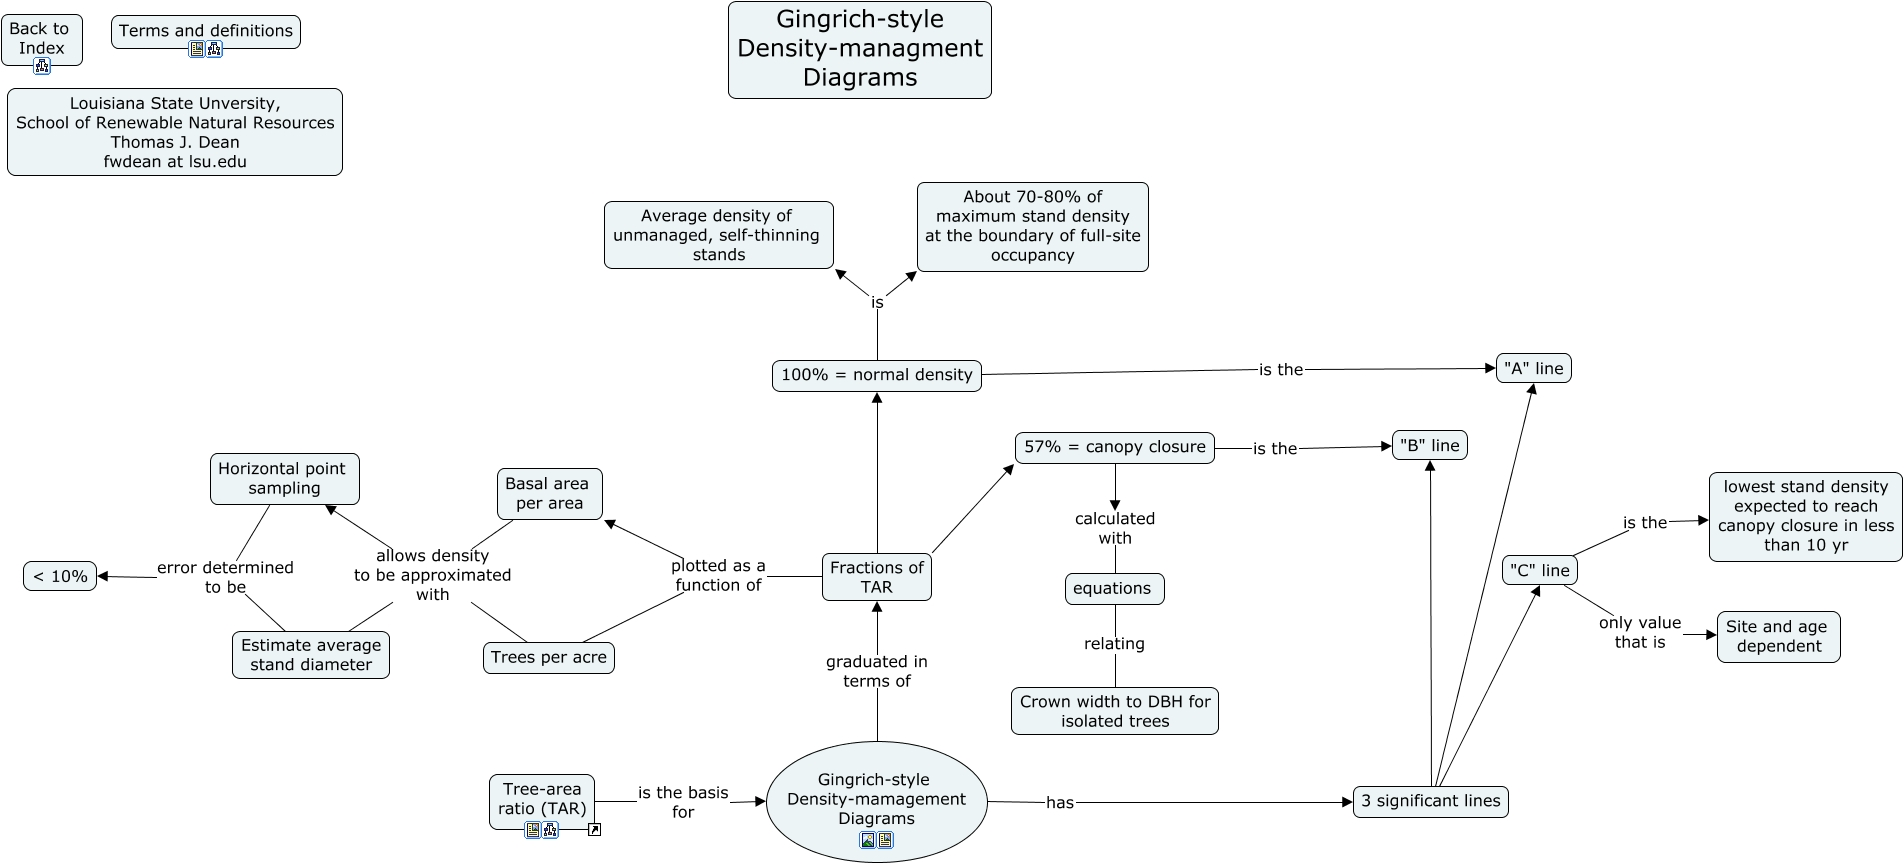 5c gingrich style density management diagrams what are the 5c gingrich style density management diagrams what are the components of the gingrich style density management diagrams and how they are used pooptronica Image collections